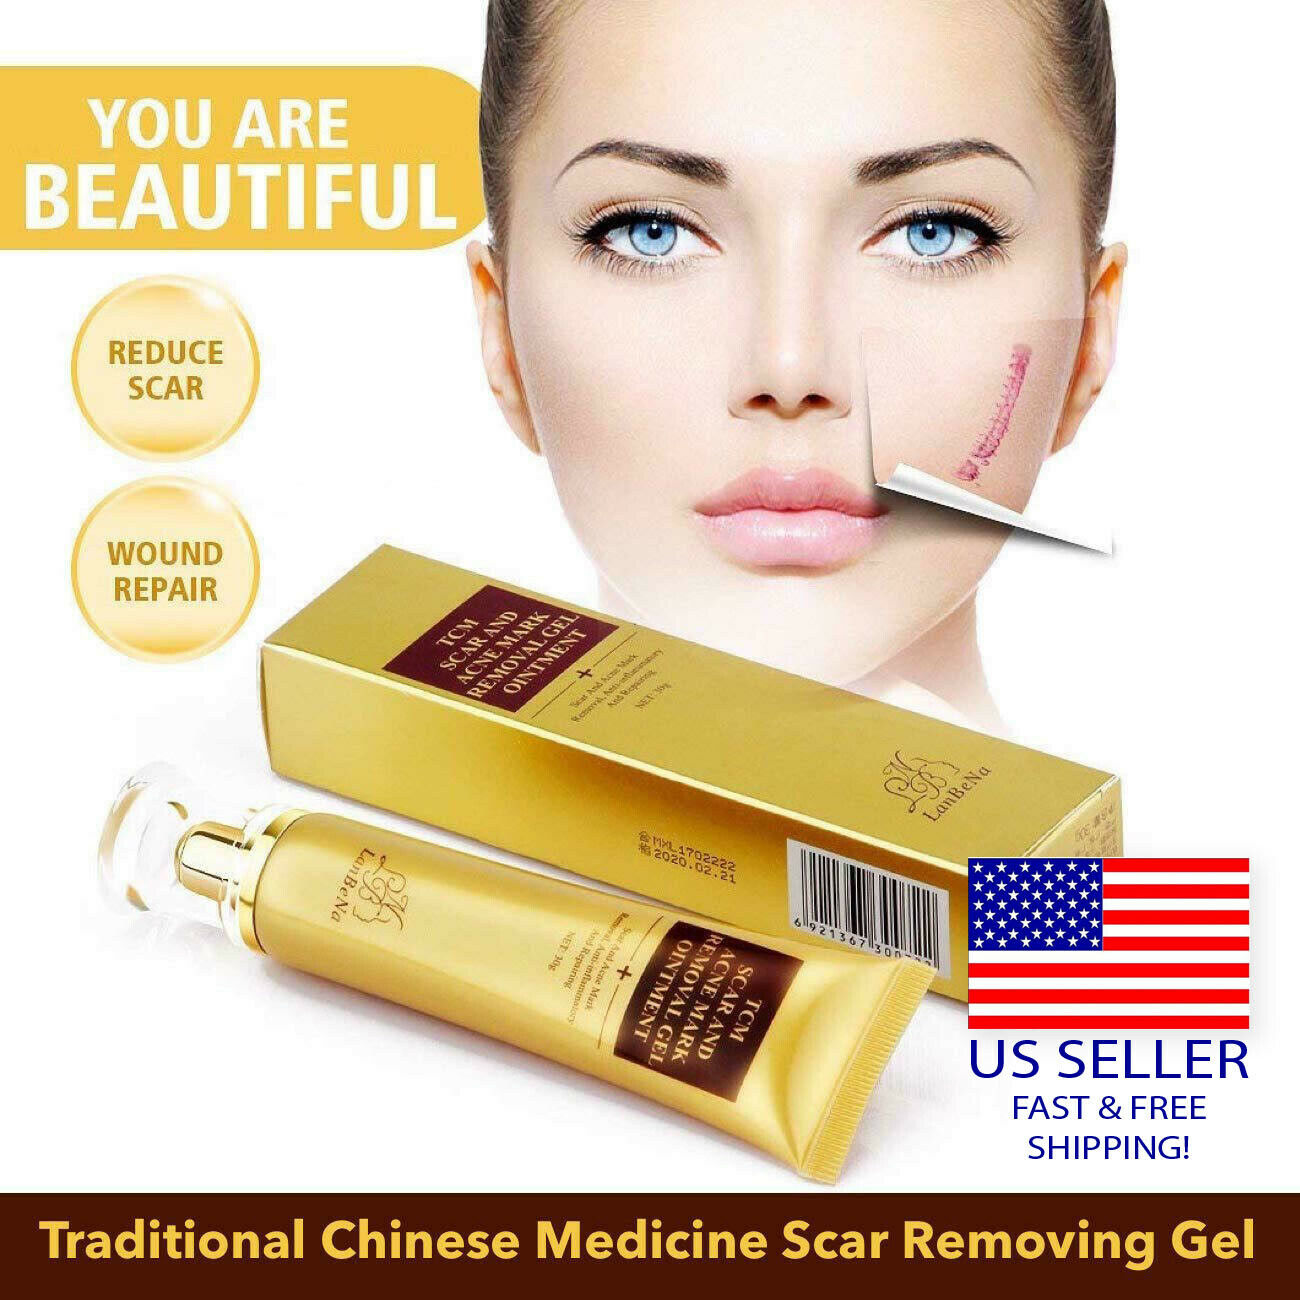 Acne Scar Removal Cream Skin Repair Face For Burns Cuts Operation